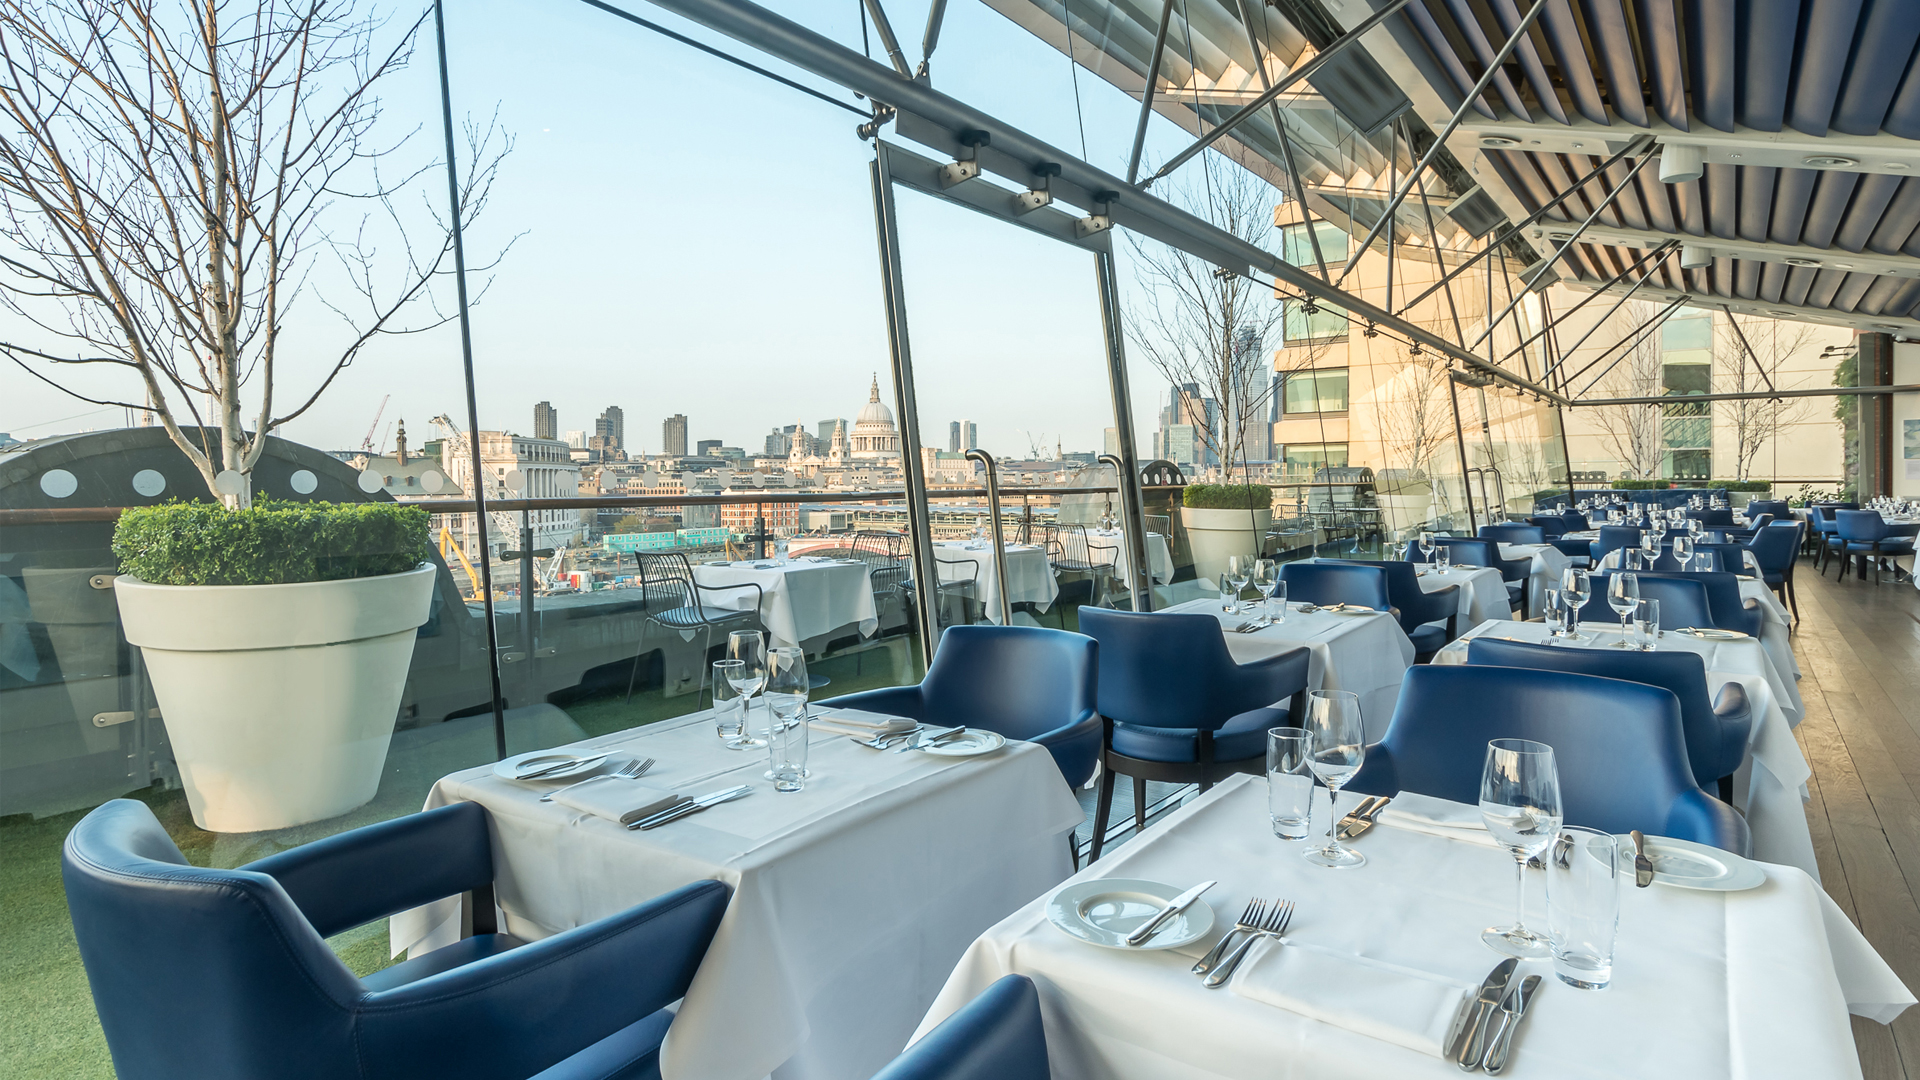 The OXO Tower terrace boasts panoramic views of the London skyline.